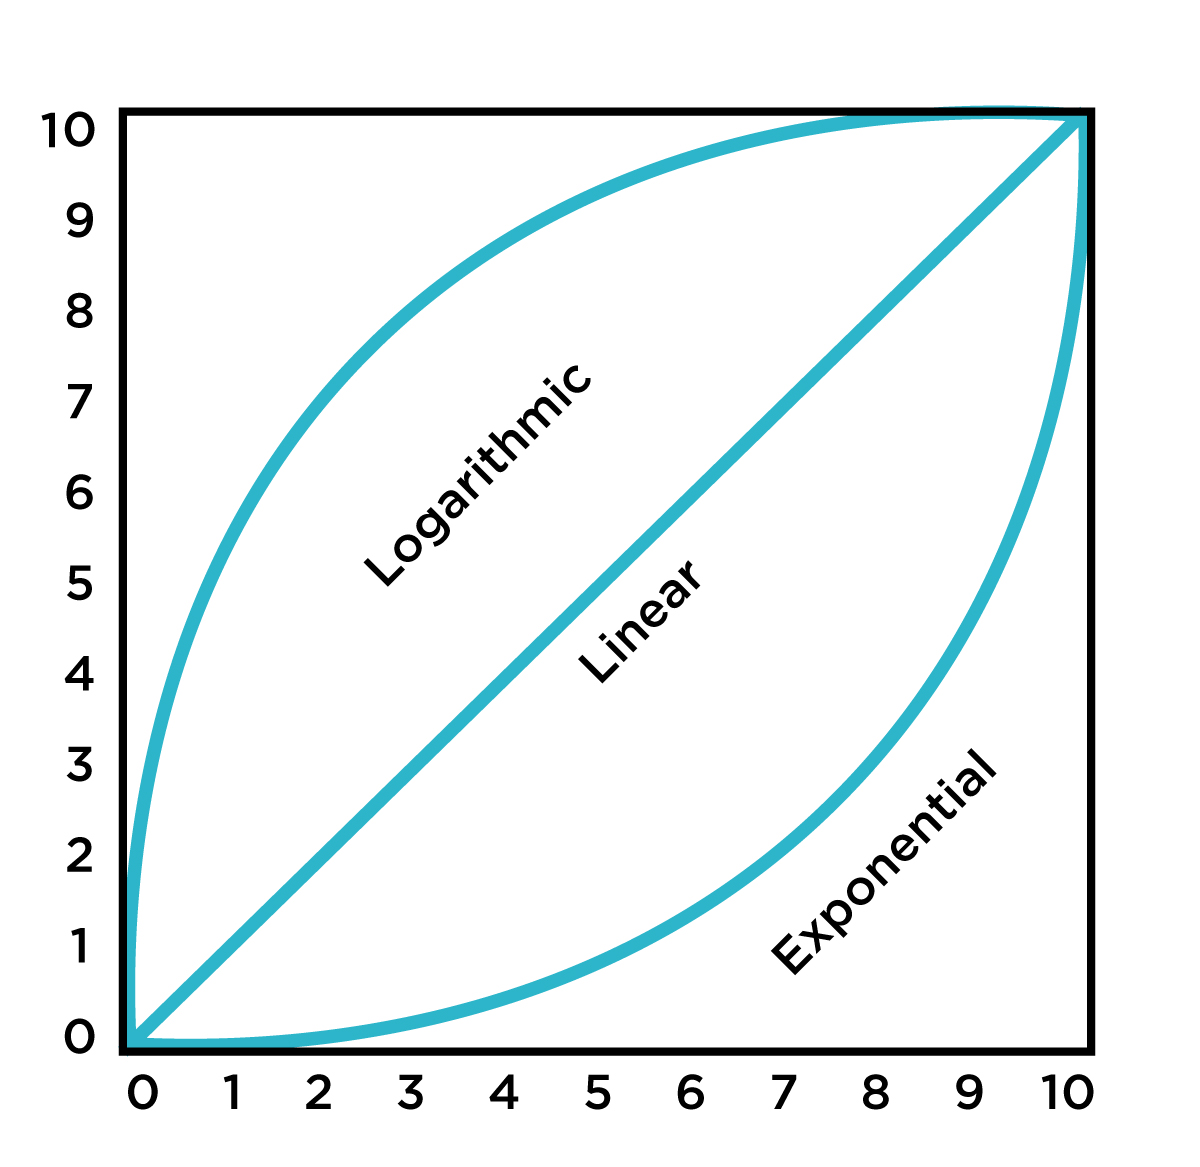 Comparison of linear, logarithmic, and exponential curve shapes.